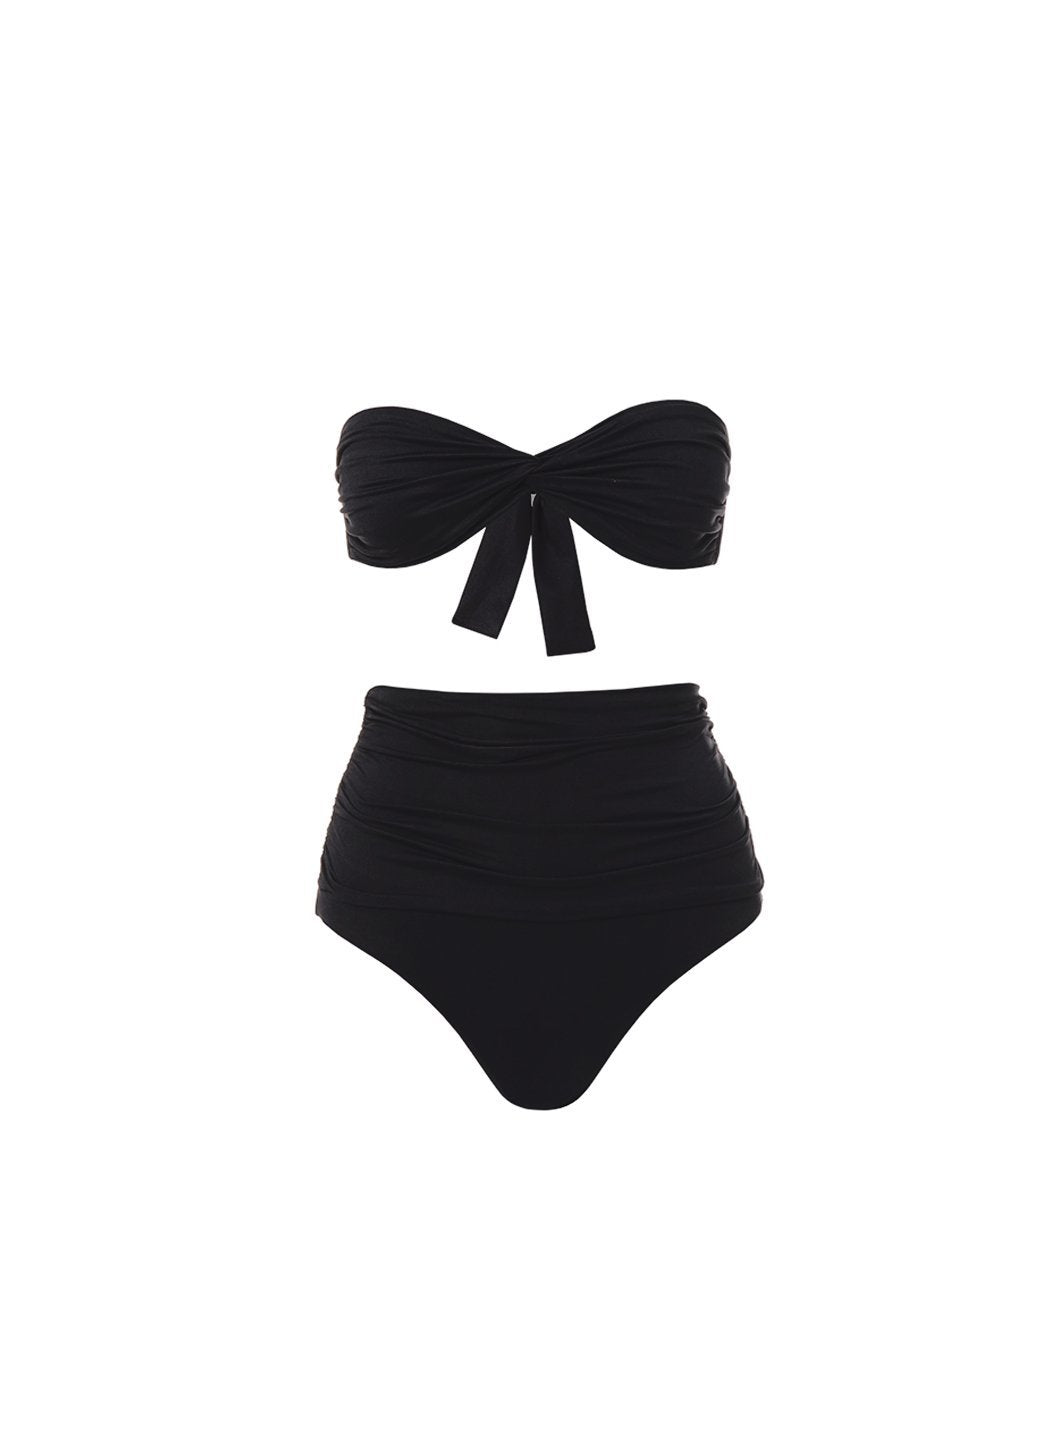 lyon black highwaisted bandeau bikini 2019